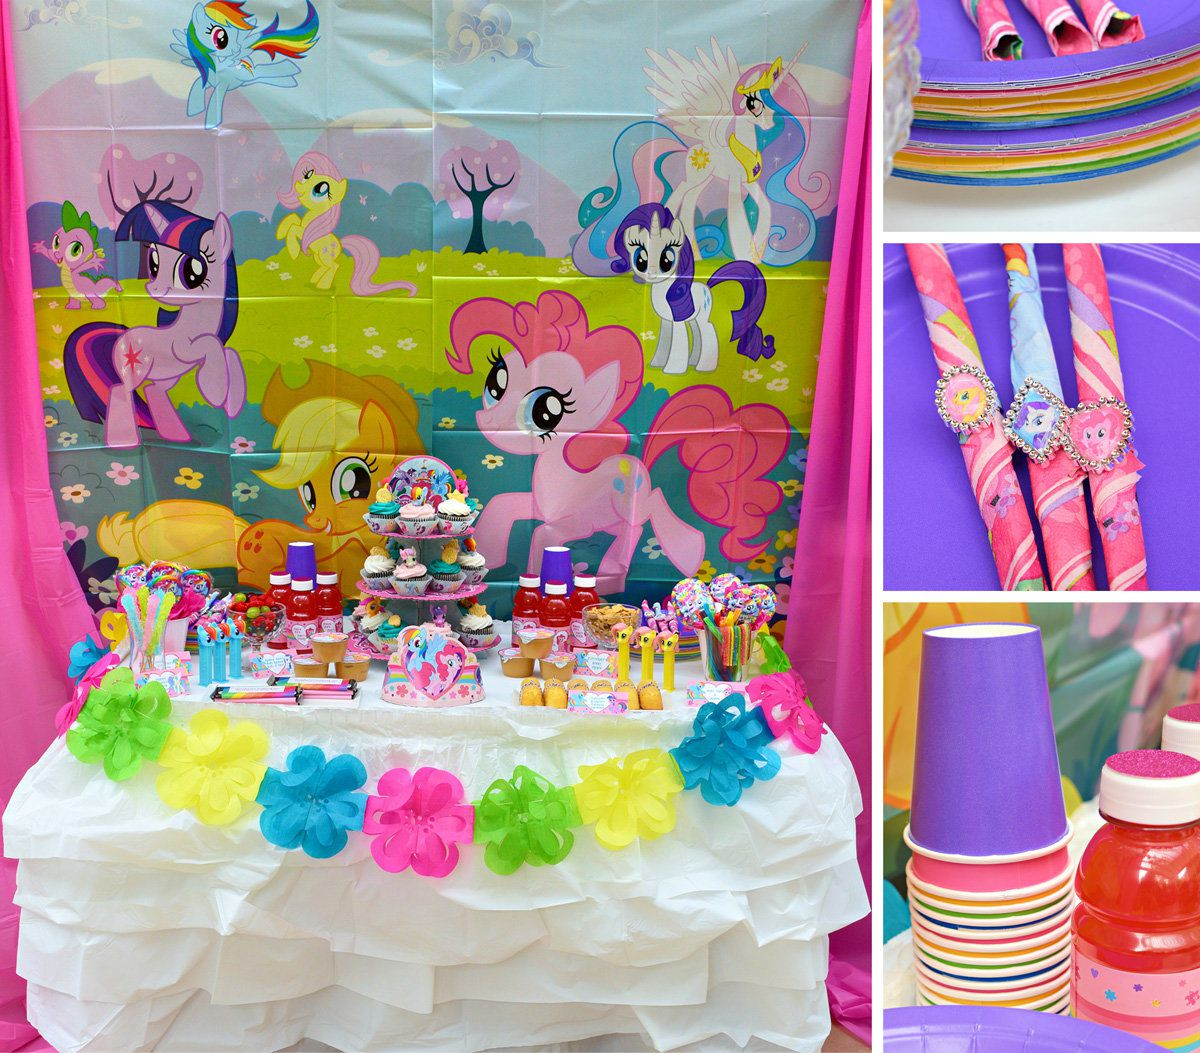 My little pony birthday party crafts - My Little Pony Decorations